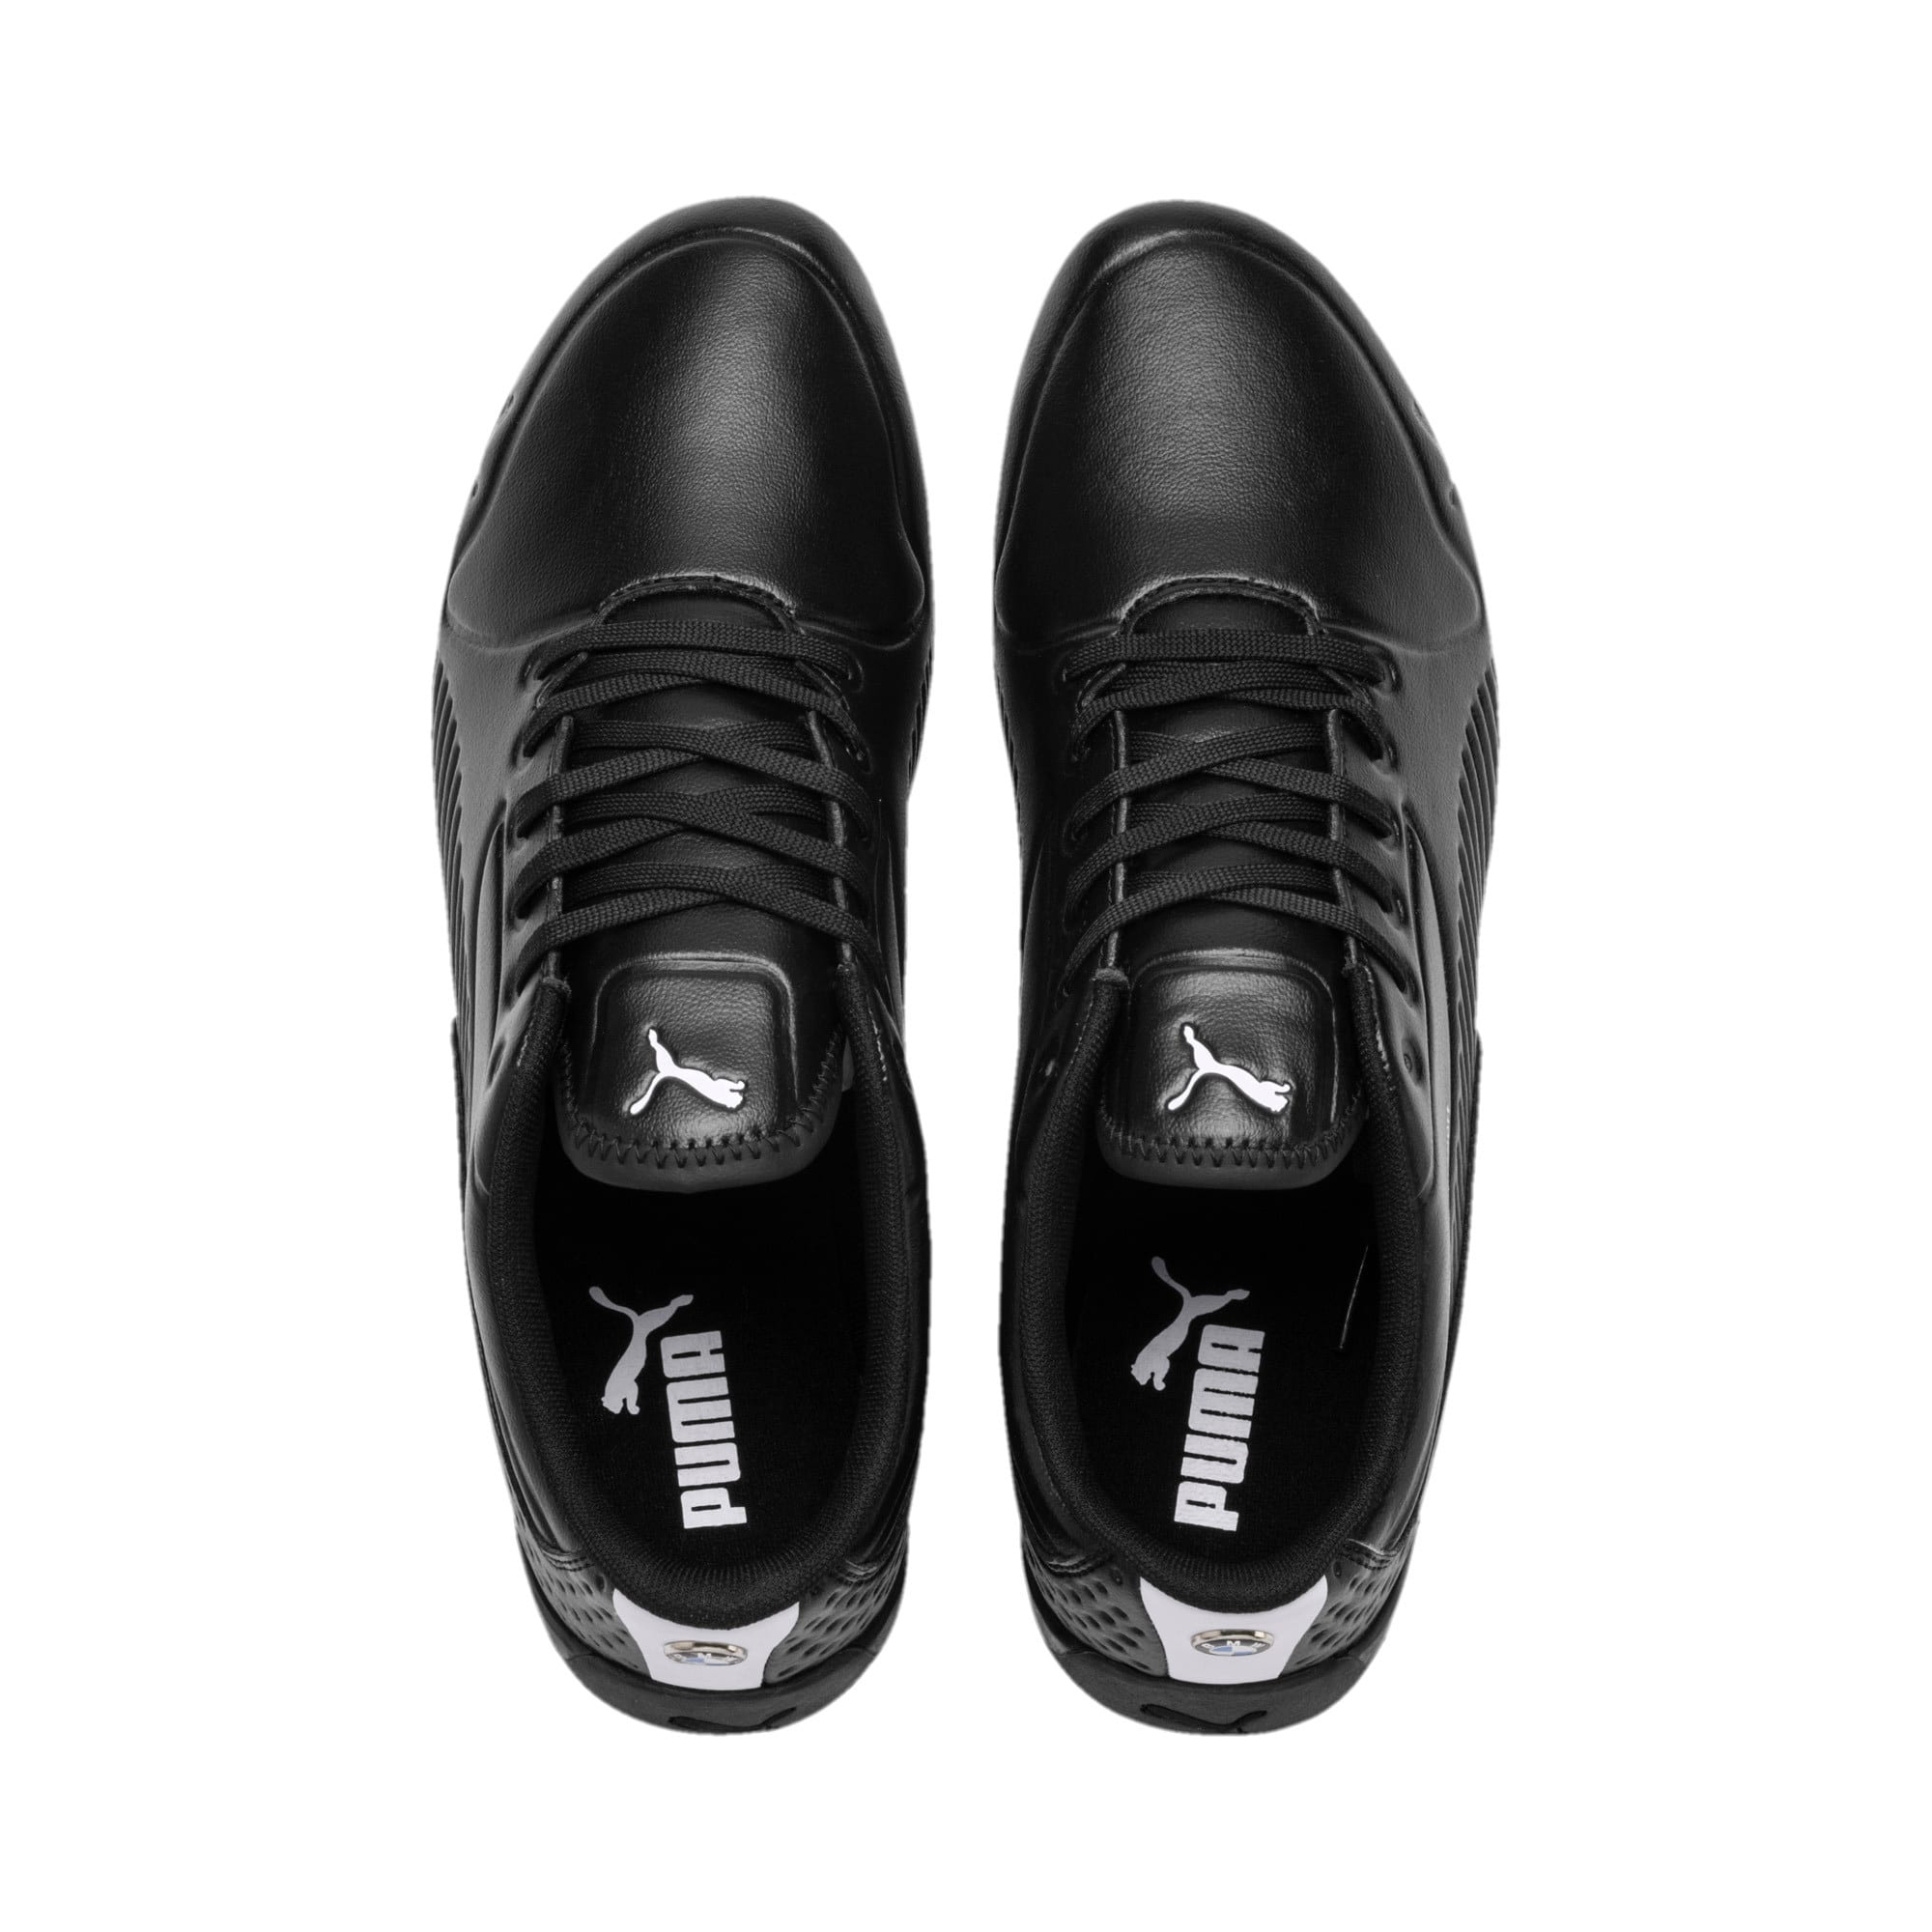 Thumbnail 7 of BMW MMS ドリフトキャット 7S ウルトラ スニーカー, Puma Black-Puma White, medium-JPN